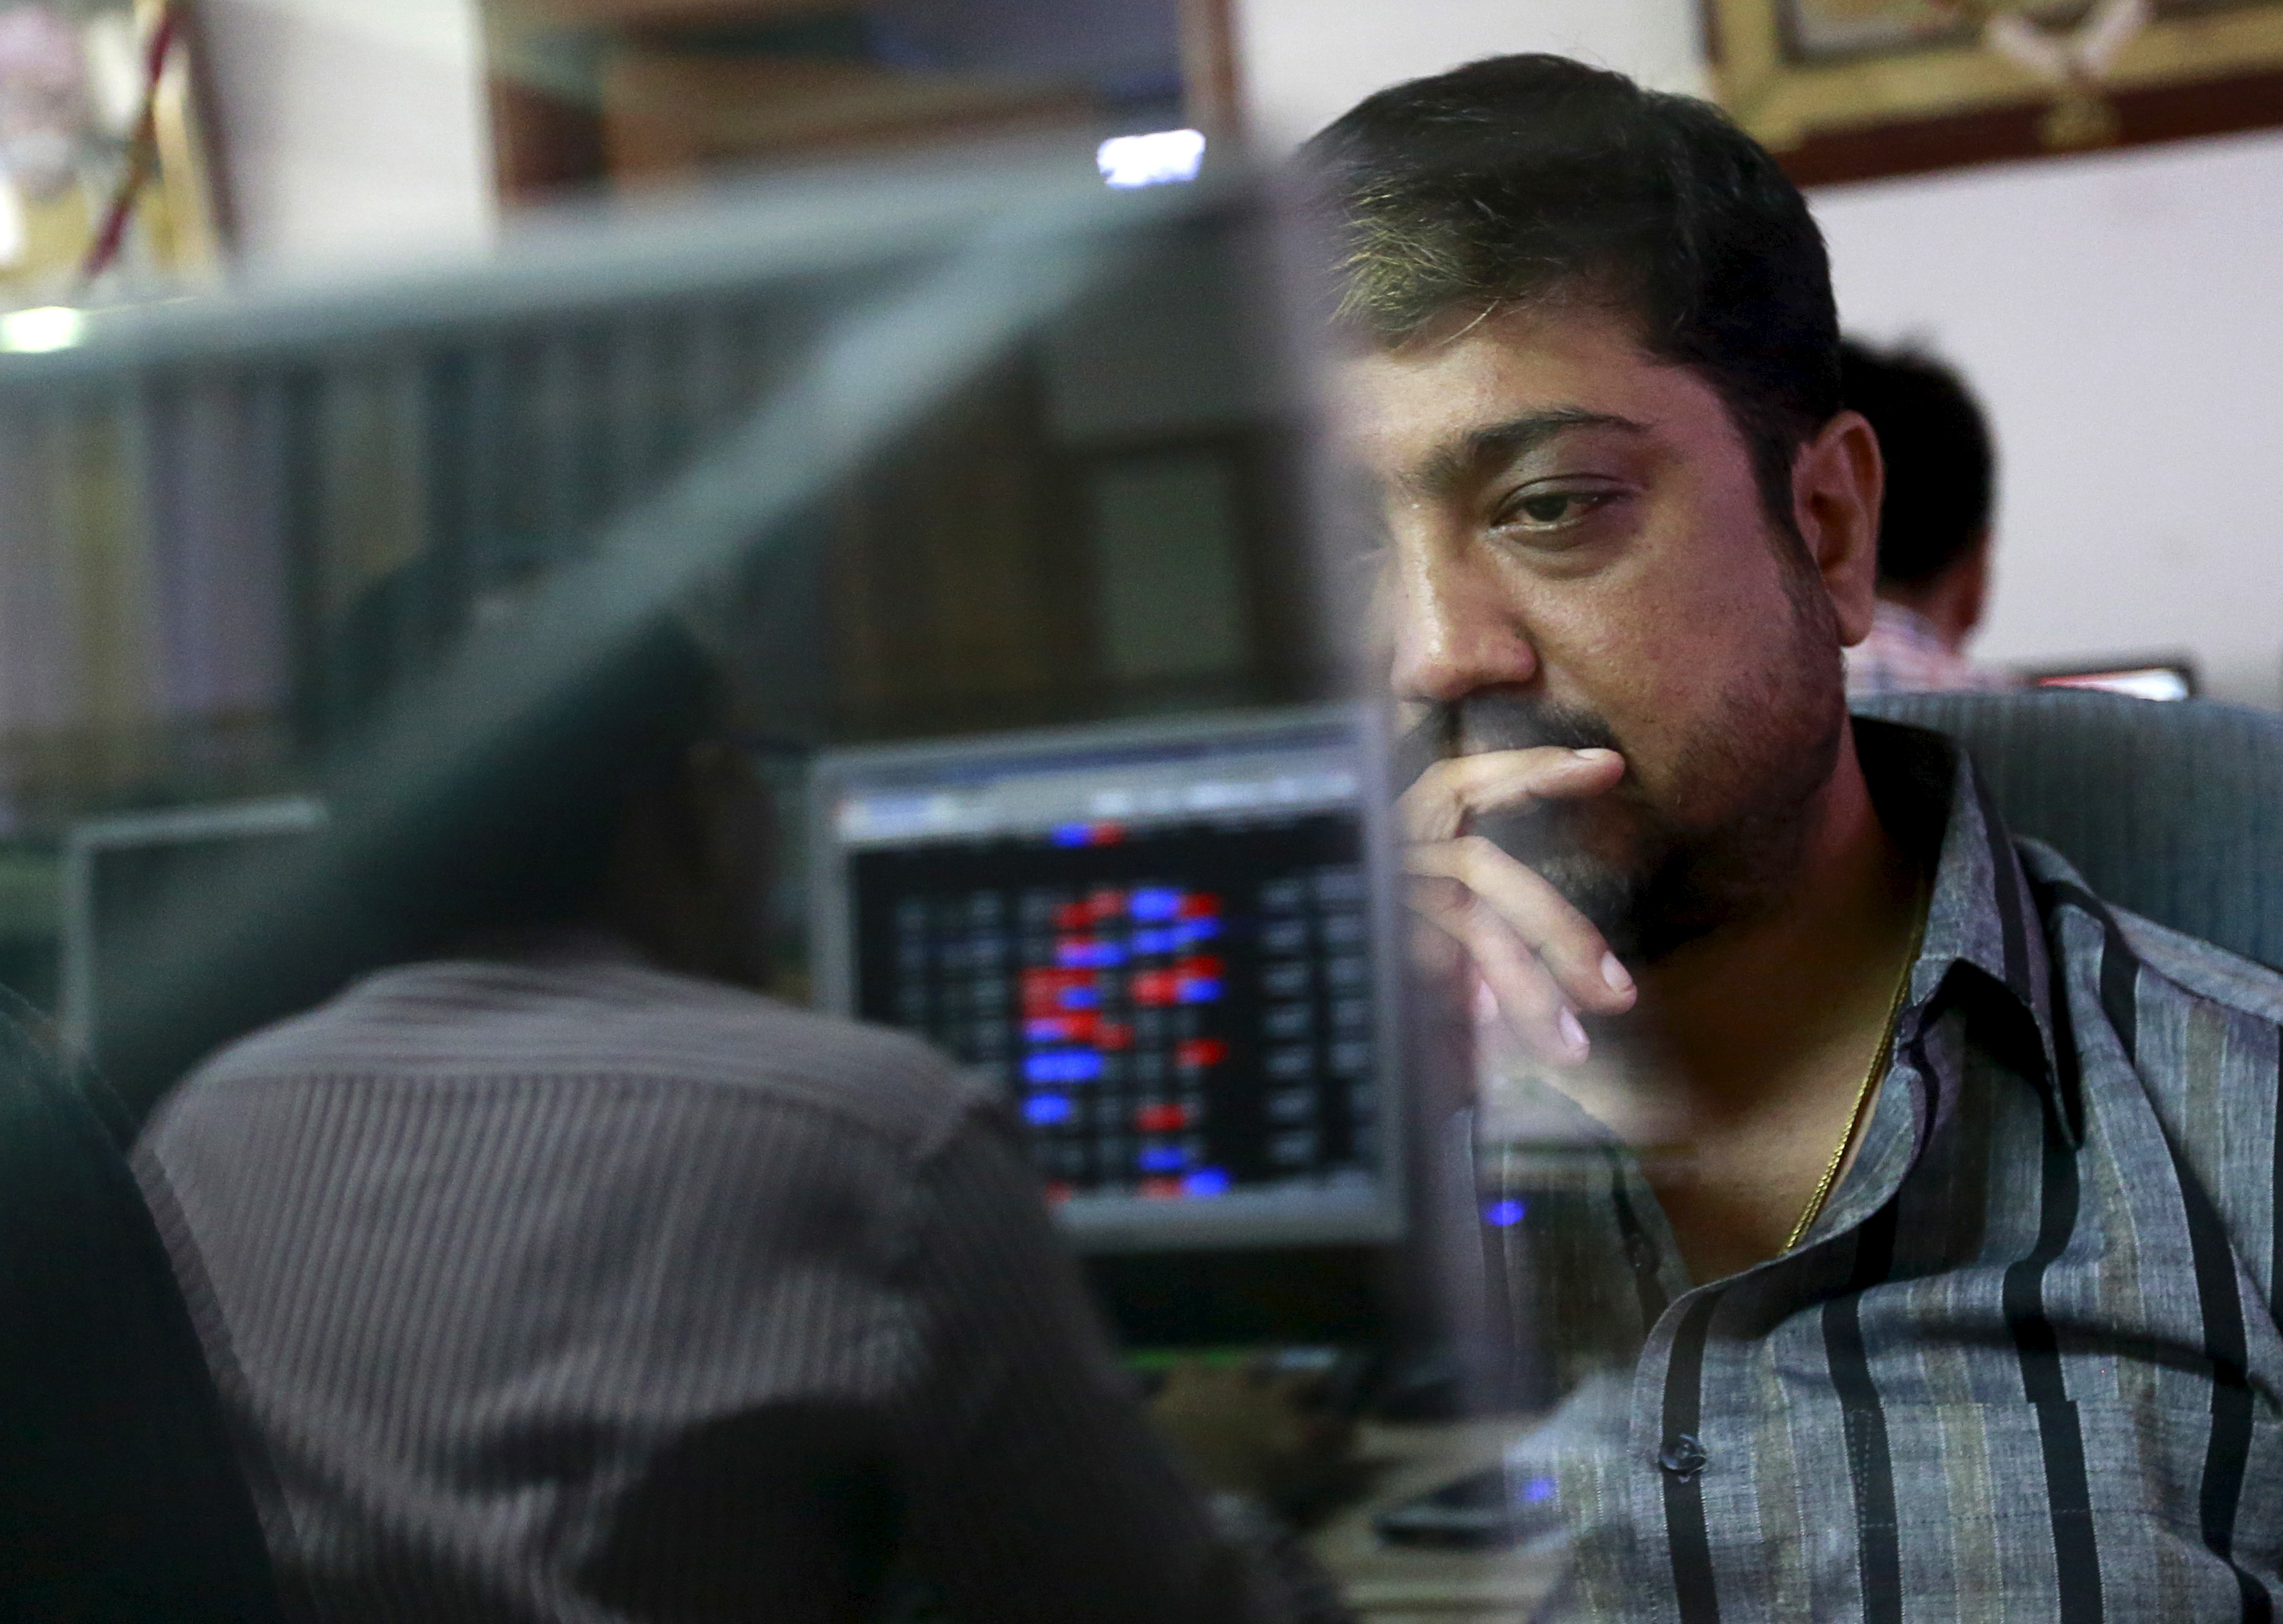 A broker reacts while trading at his computer terminal at a stock brokerage firm in Mumbai, India, August 24, 2015. REUTERS/Danish Siddiqui